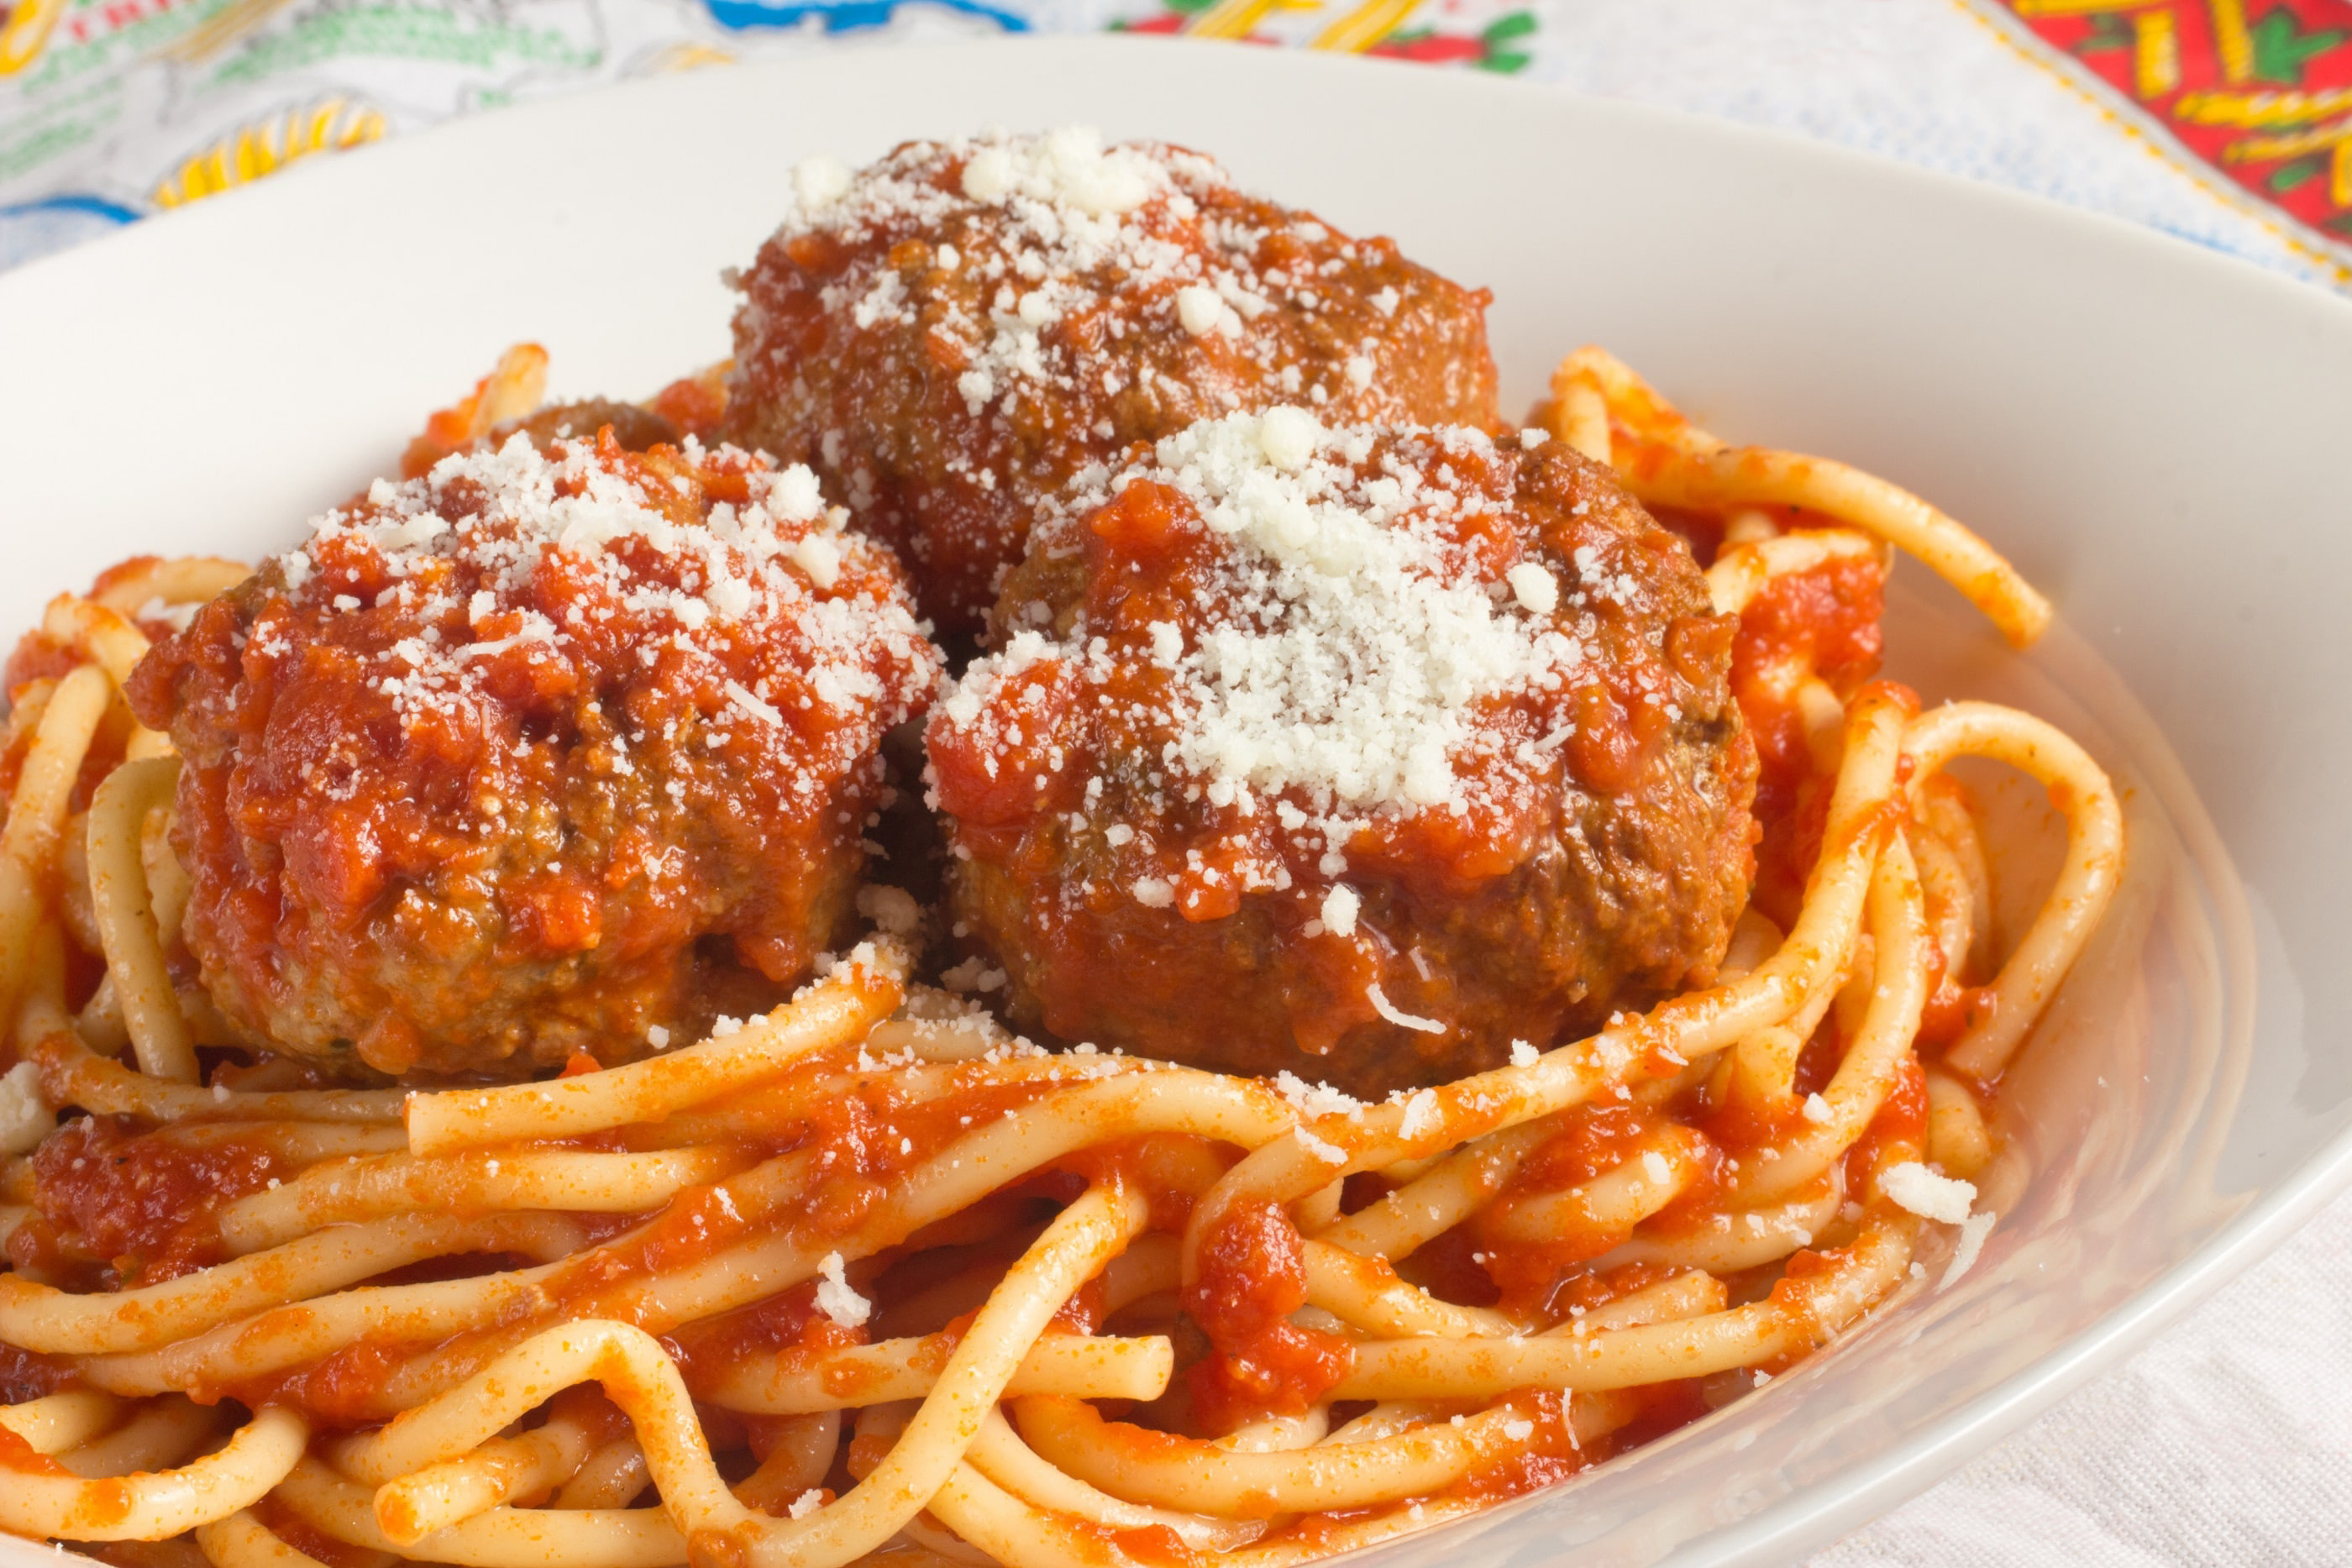 Spaghetti and meatballs in a white bowl